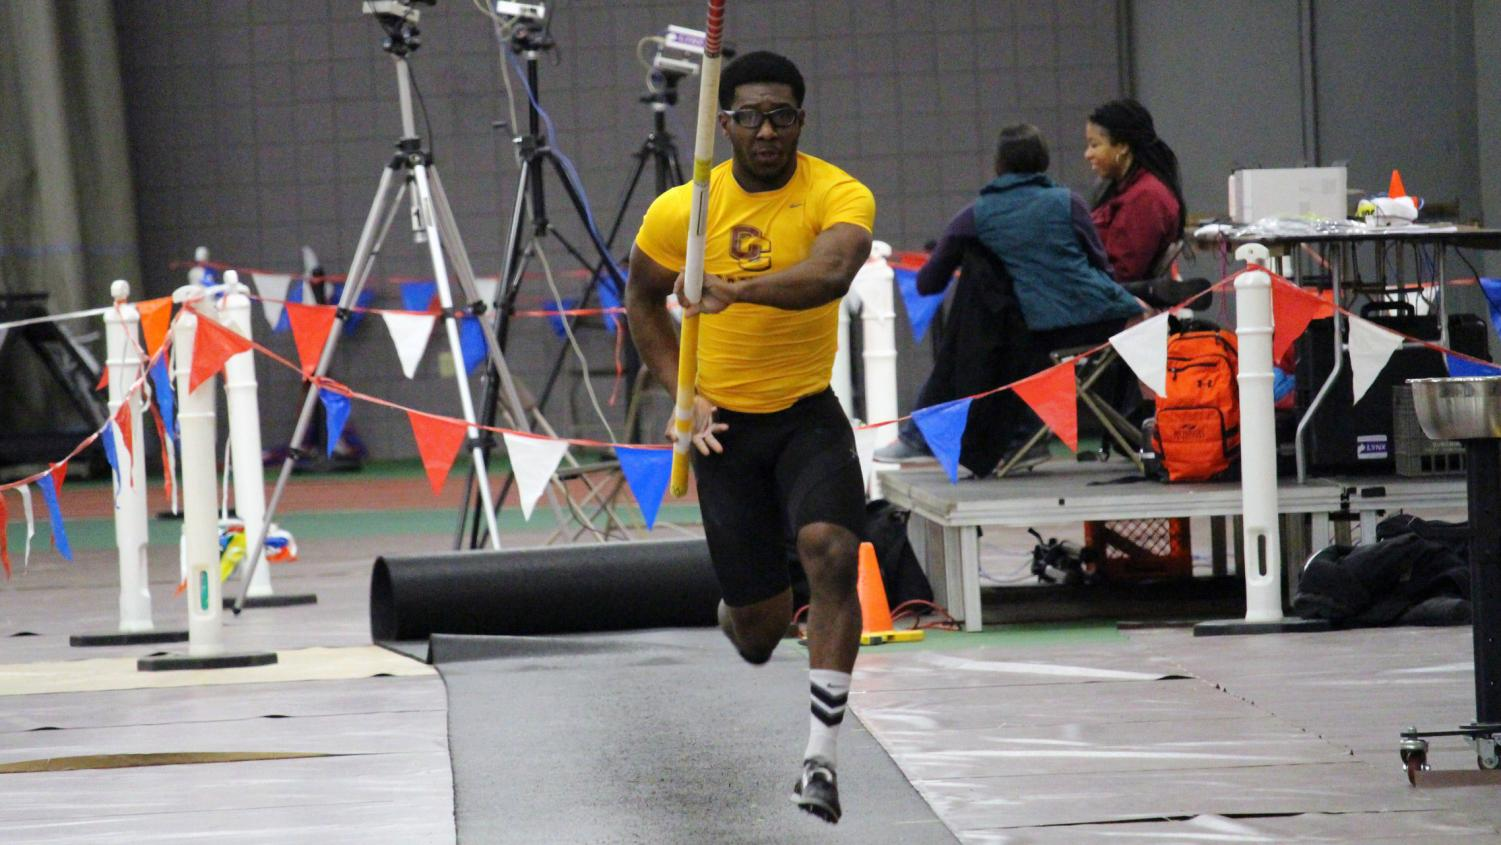 College junior Jahkeem Wheatley captures first place in the pole vault event in the Dan Kinsey Meet at Oberlin Jan. 12.